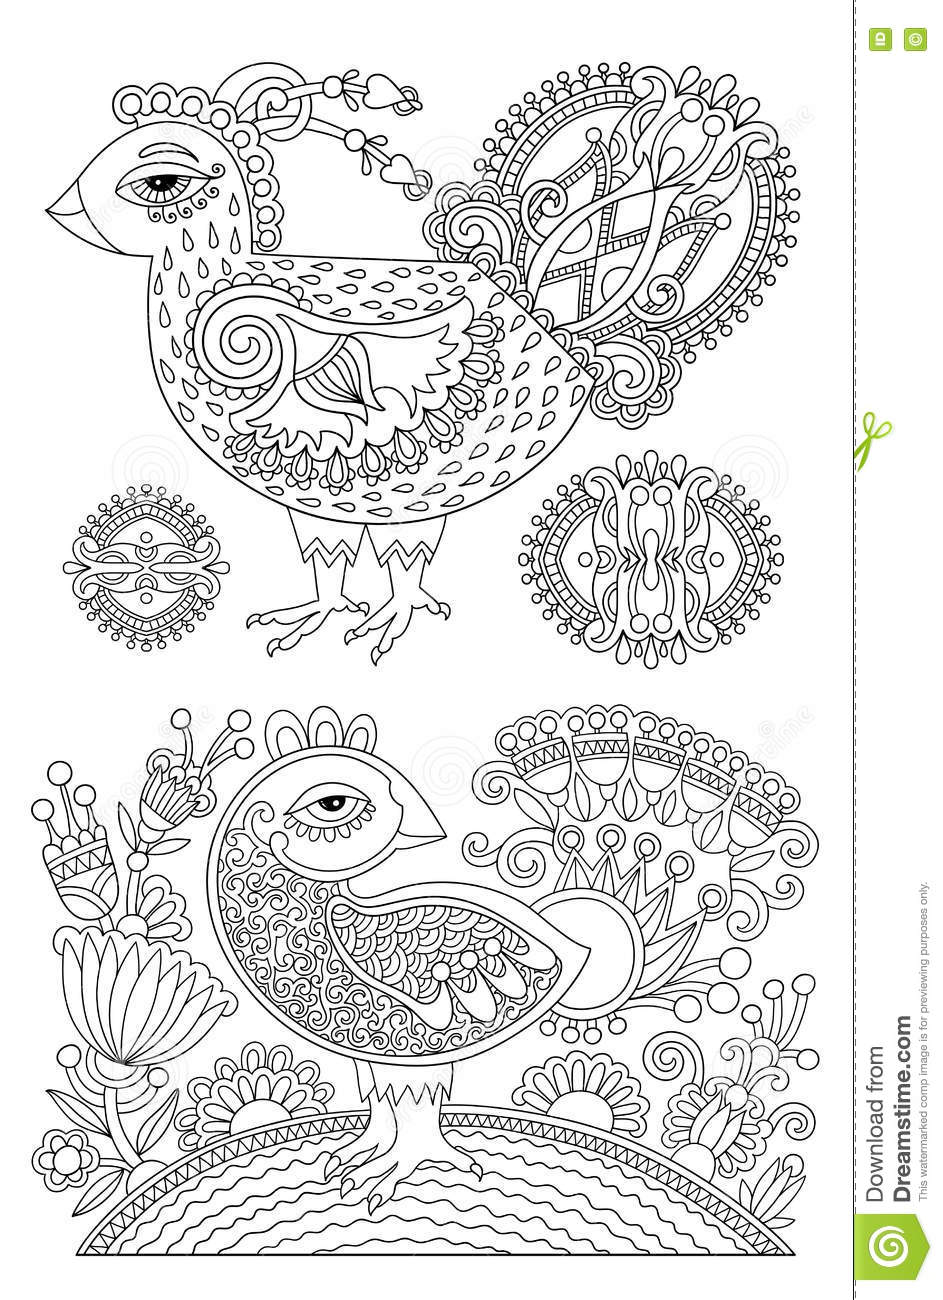 Original Black And White Line Drawing Page Of Coloring